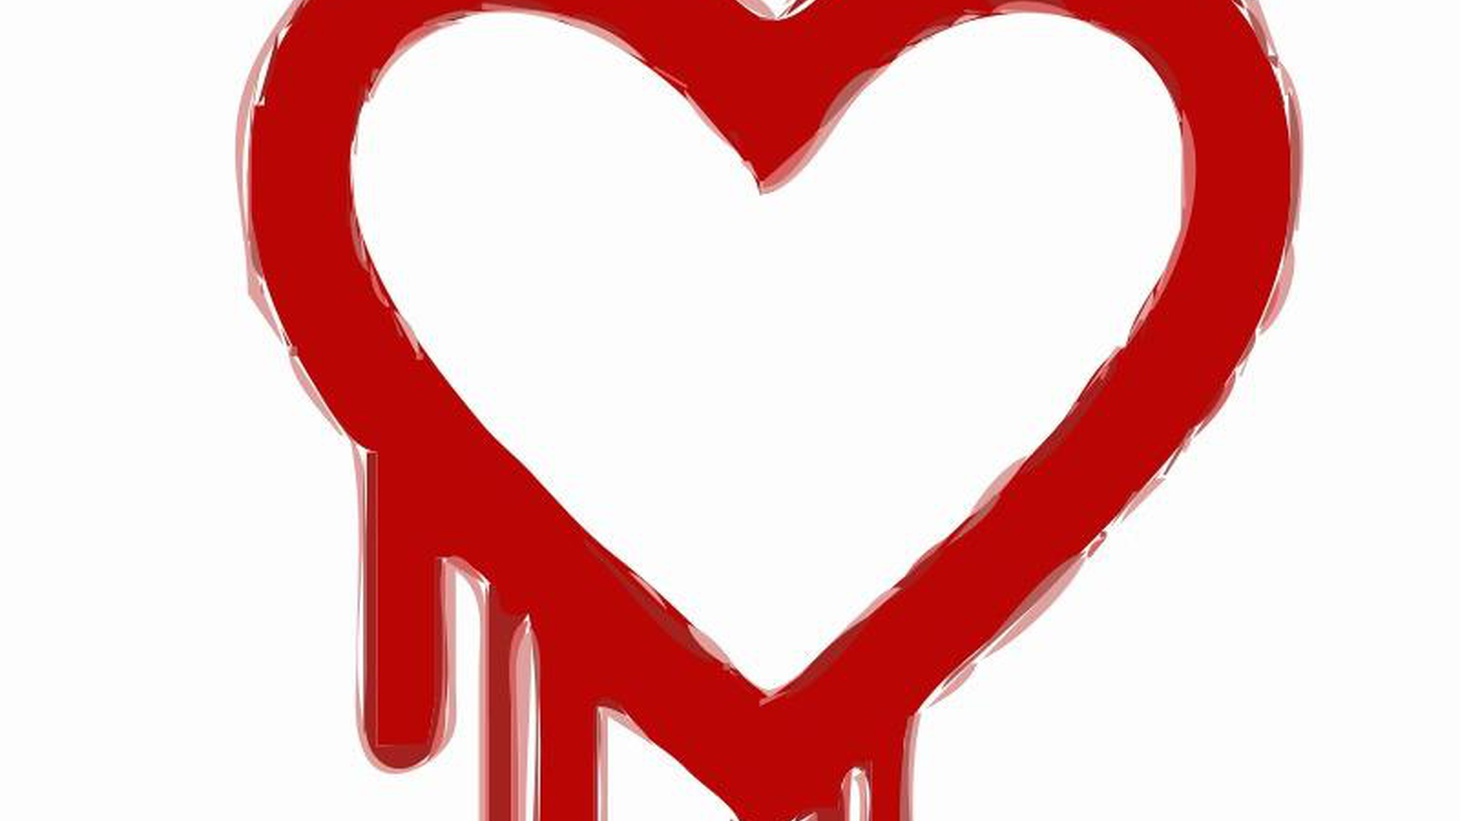 The so-called Heartbleed security flaw has revealed every user's worst nightmare about security on the Internet. Should somebody take charge?